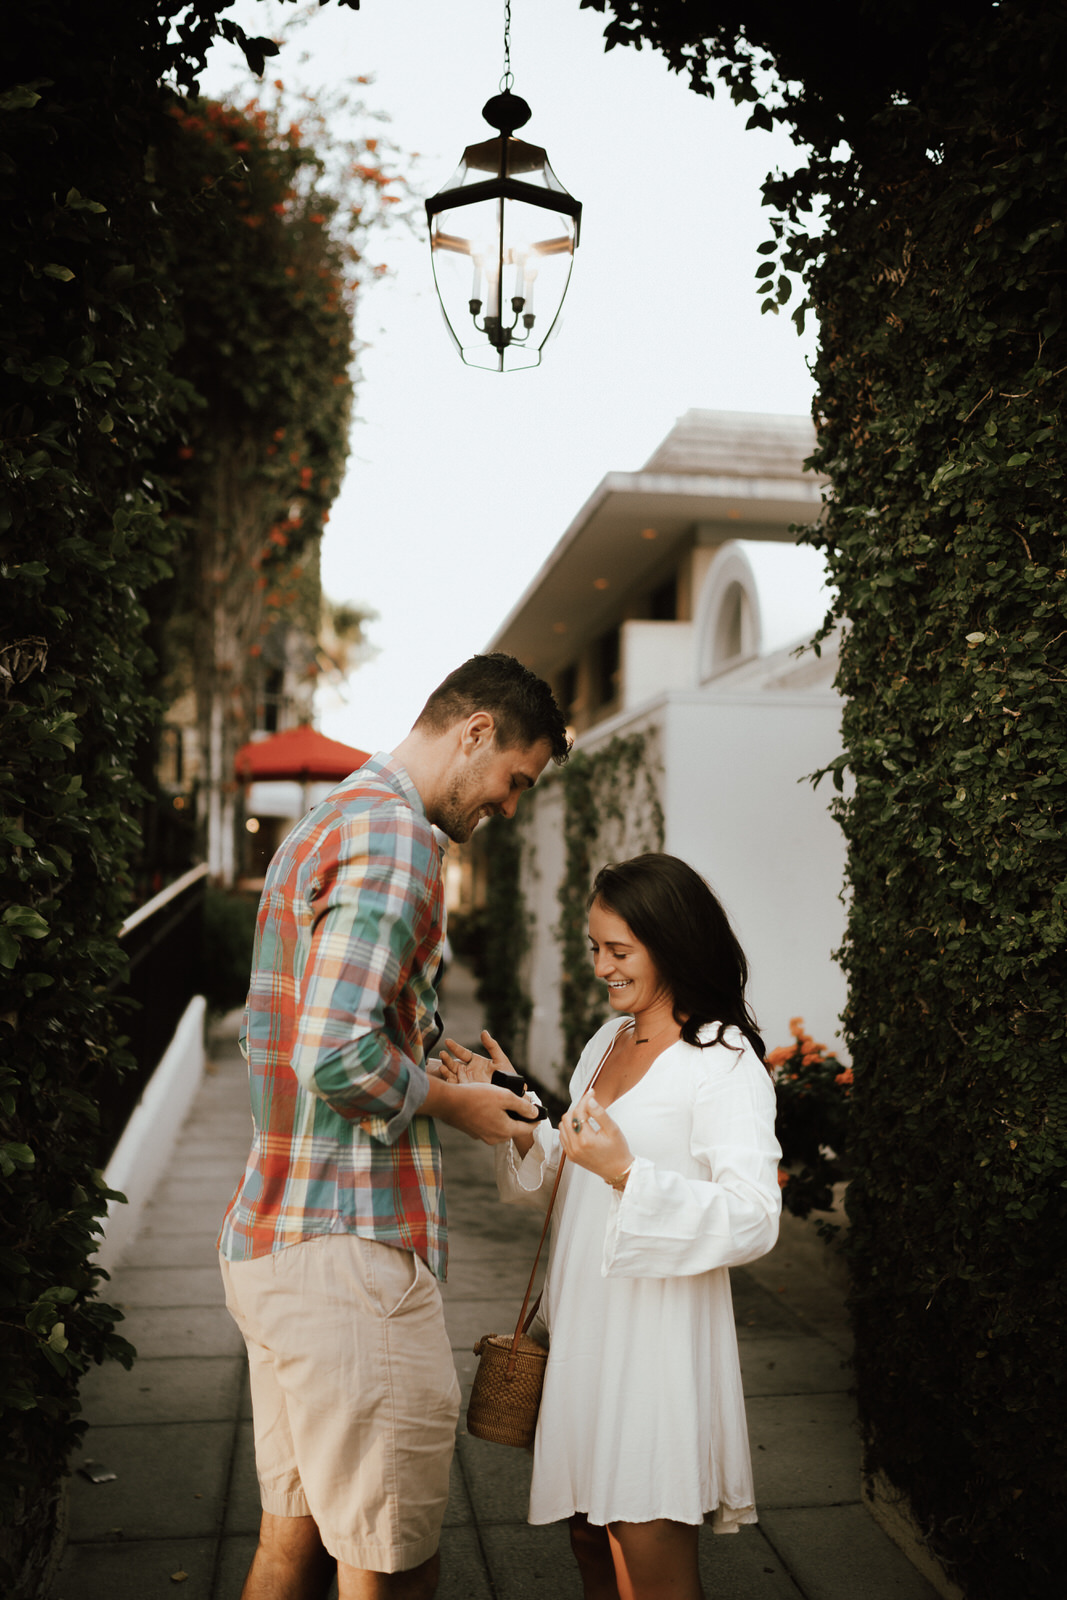 Naples 5th Ave Proposal Photos- Michelle Gonzalez Photography- Matt and Jenna-19.JPG